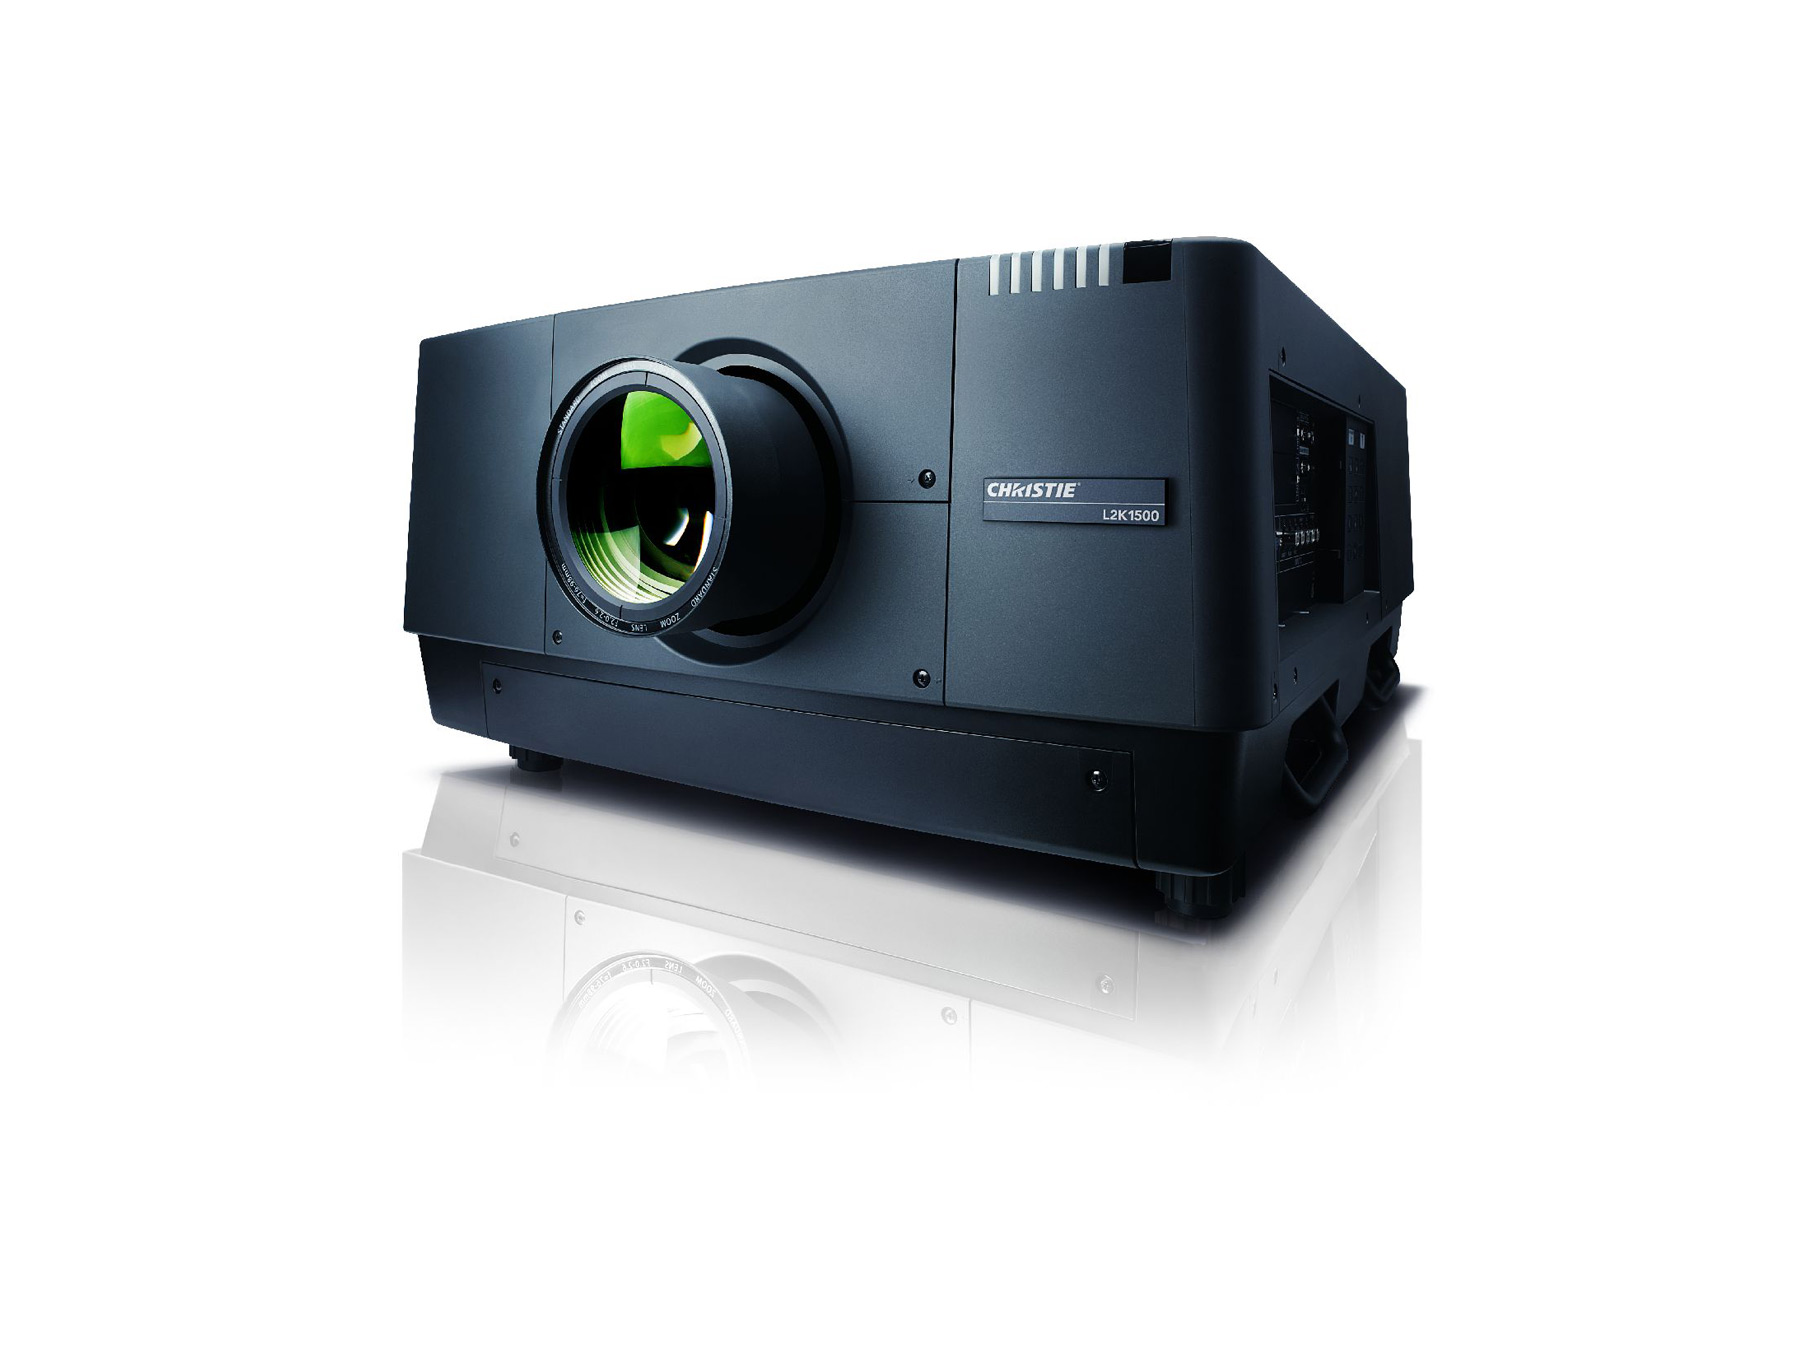 /globalassets/.catalog/products/images/christie-l2k1500/gallery/christie-l2k-1500-3-lcd-digital-projector-image-14.jpg